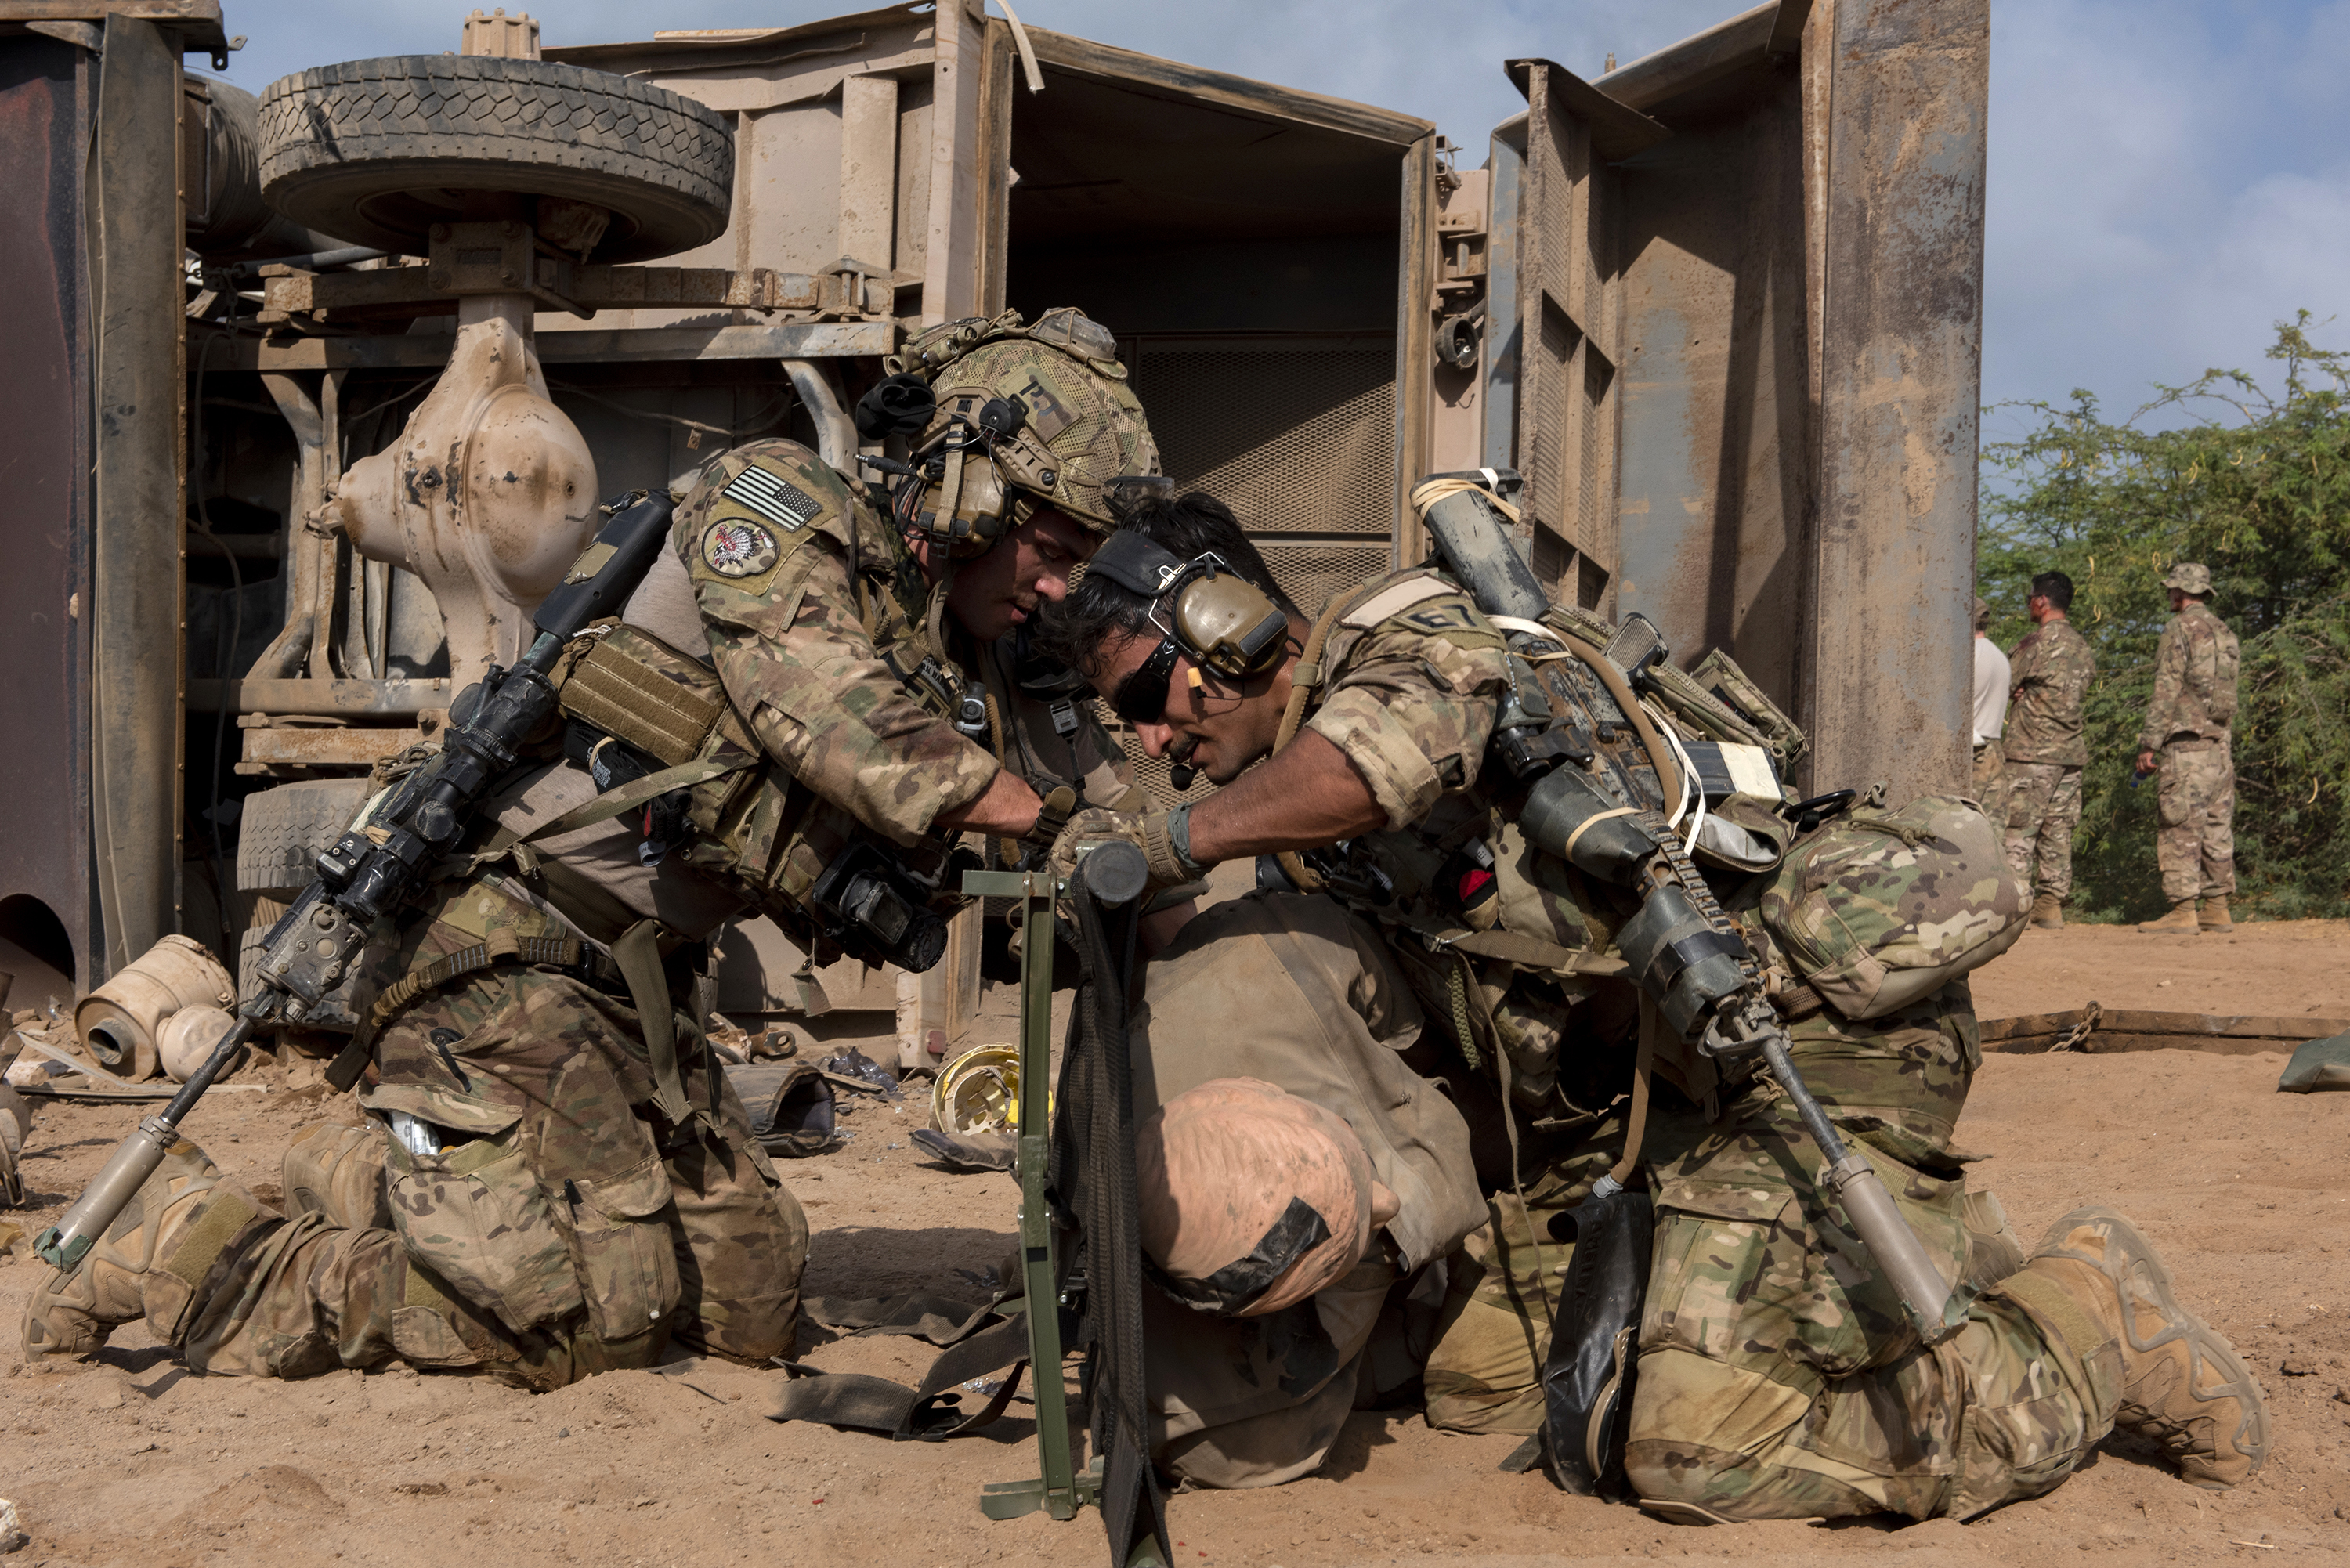 U.S. Air Force Pararescuemen from the 82nd Expeditionary Rescue Squadron load a simulated casualty onto a litter in Djibouti City, Djibouti, April 24, 2018. The Airmen conducted various rescue techniques during a joint mass casualty training exercise. (U.S. Air National Guard photo by Master Sgt. Sarah Mattison) (Portions of this image were obscured for security reasons)